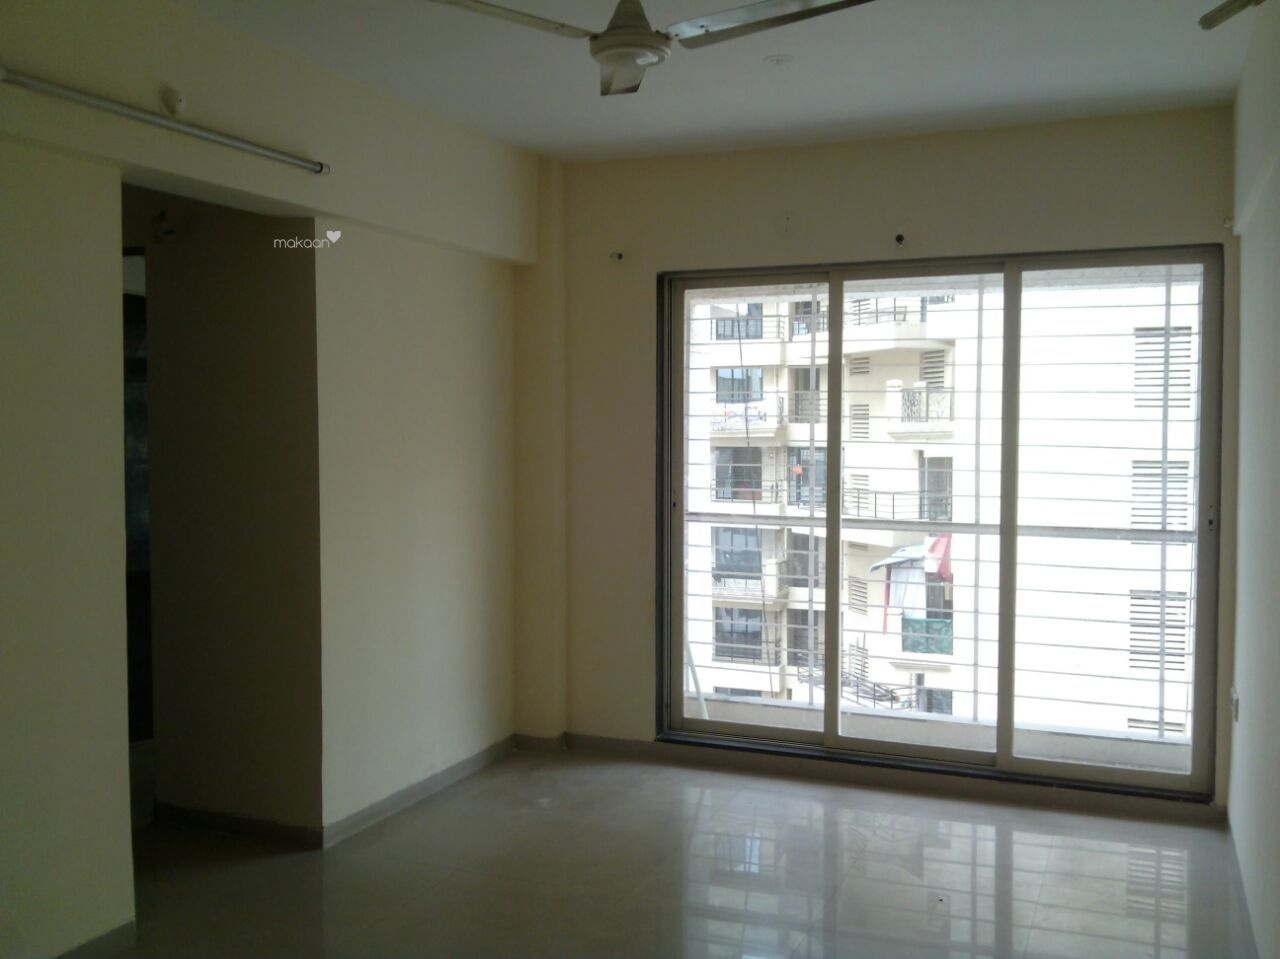 850 sq ft 2BHK 2BHK+2T (850 sq ft) Property By Bhoomi Enterprises In Project, Kharghar